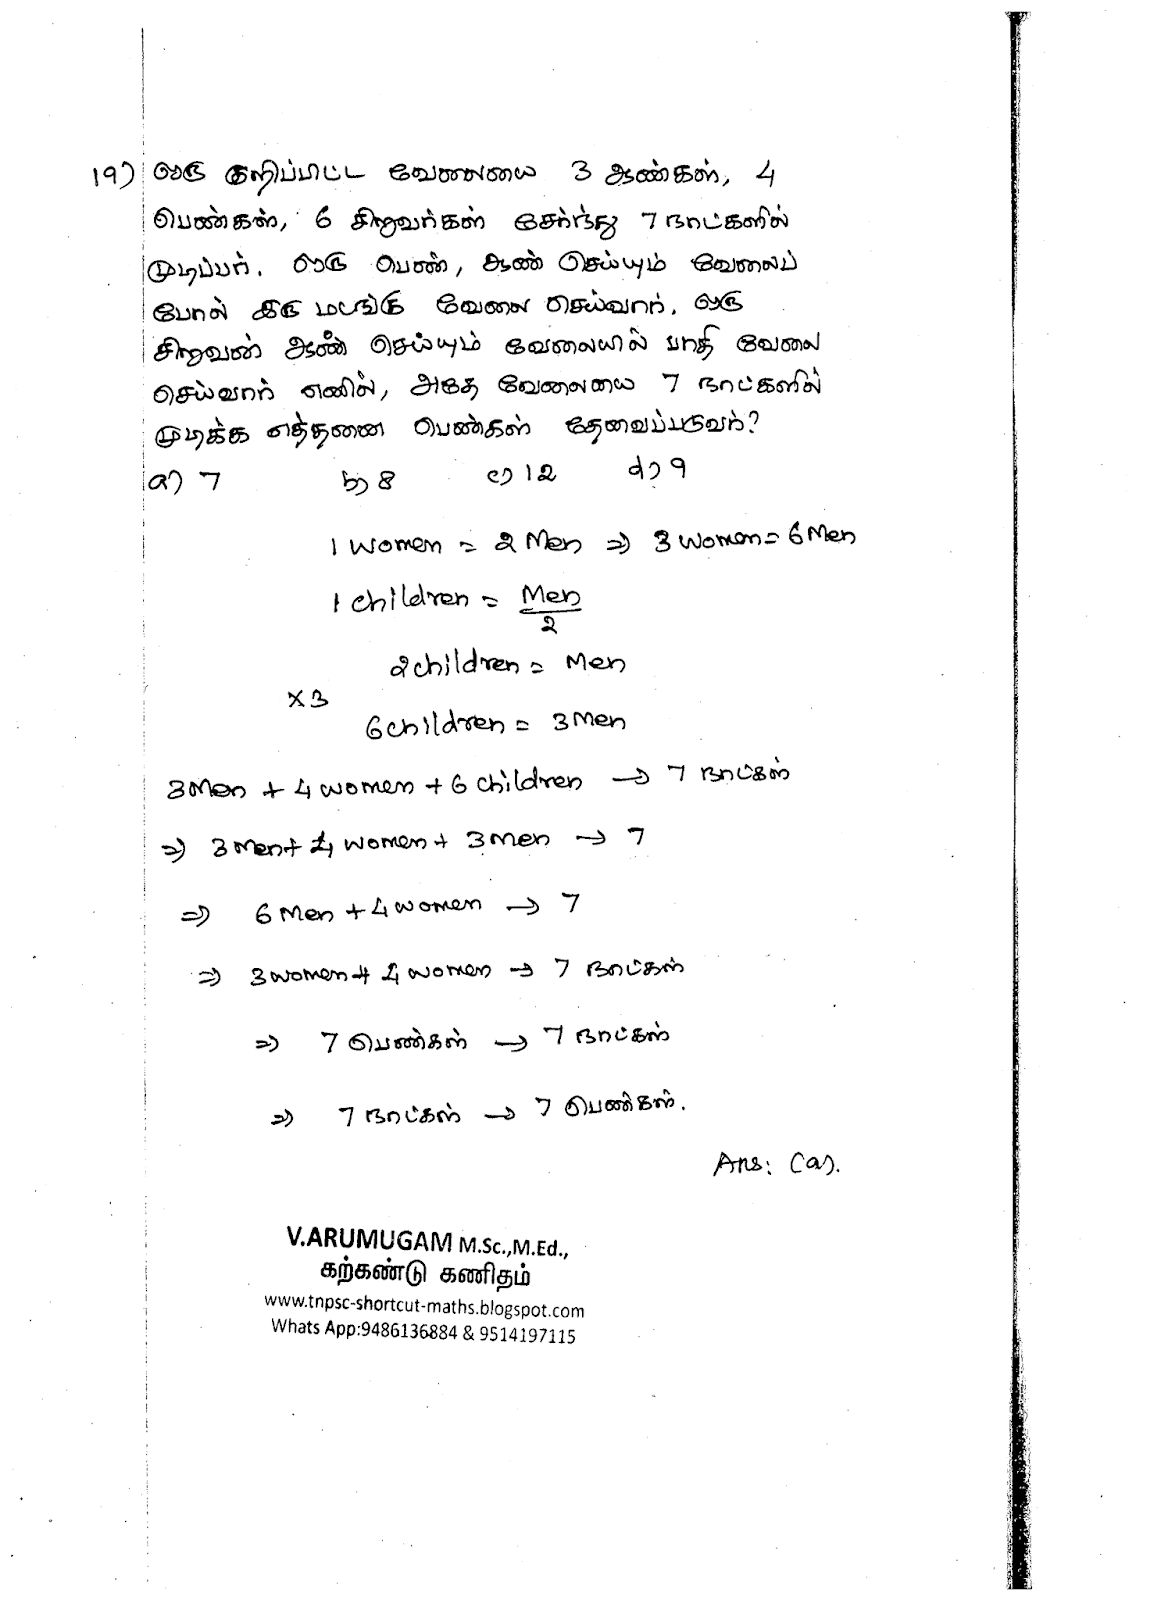 TNPSC – 2019 - Laboratory Assistant in Department of Fisheries in the Tamil Nadu Fisheries Subordinate Service, 2014-2015 EXAM - EXAM DATE: 22.06.2019